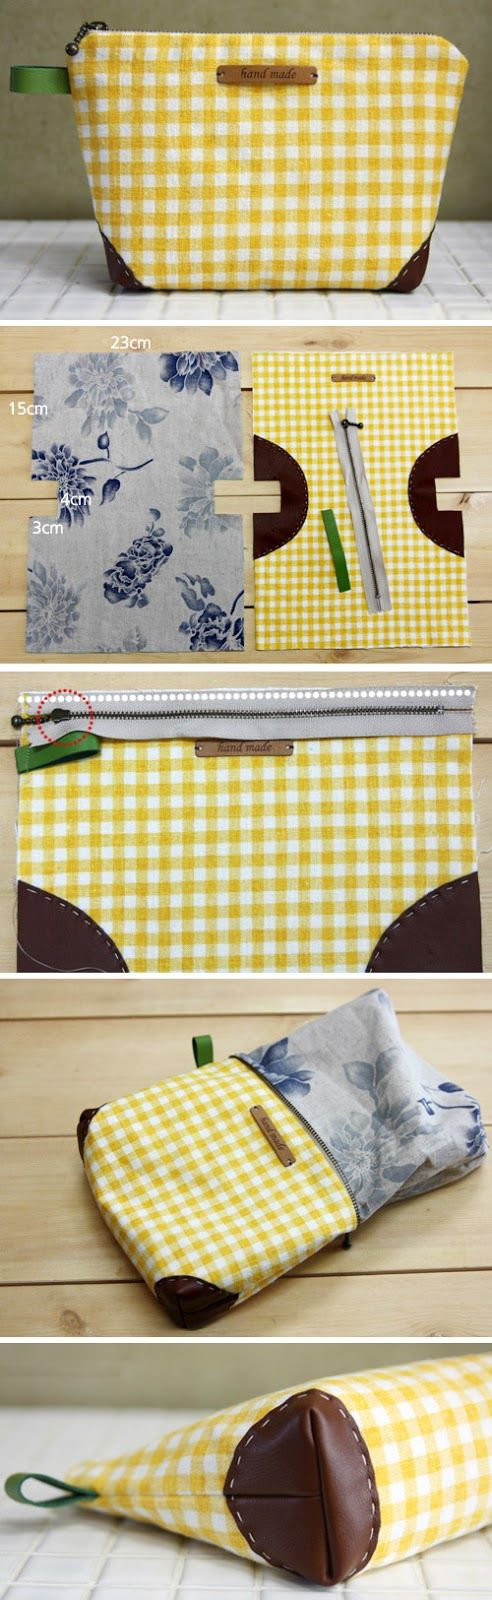 Easy Zippered Cosmetics Bag Pattern + DIY Tutorial in Pictures . <3